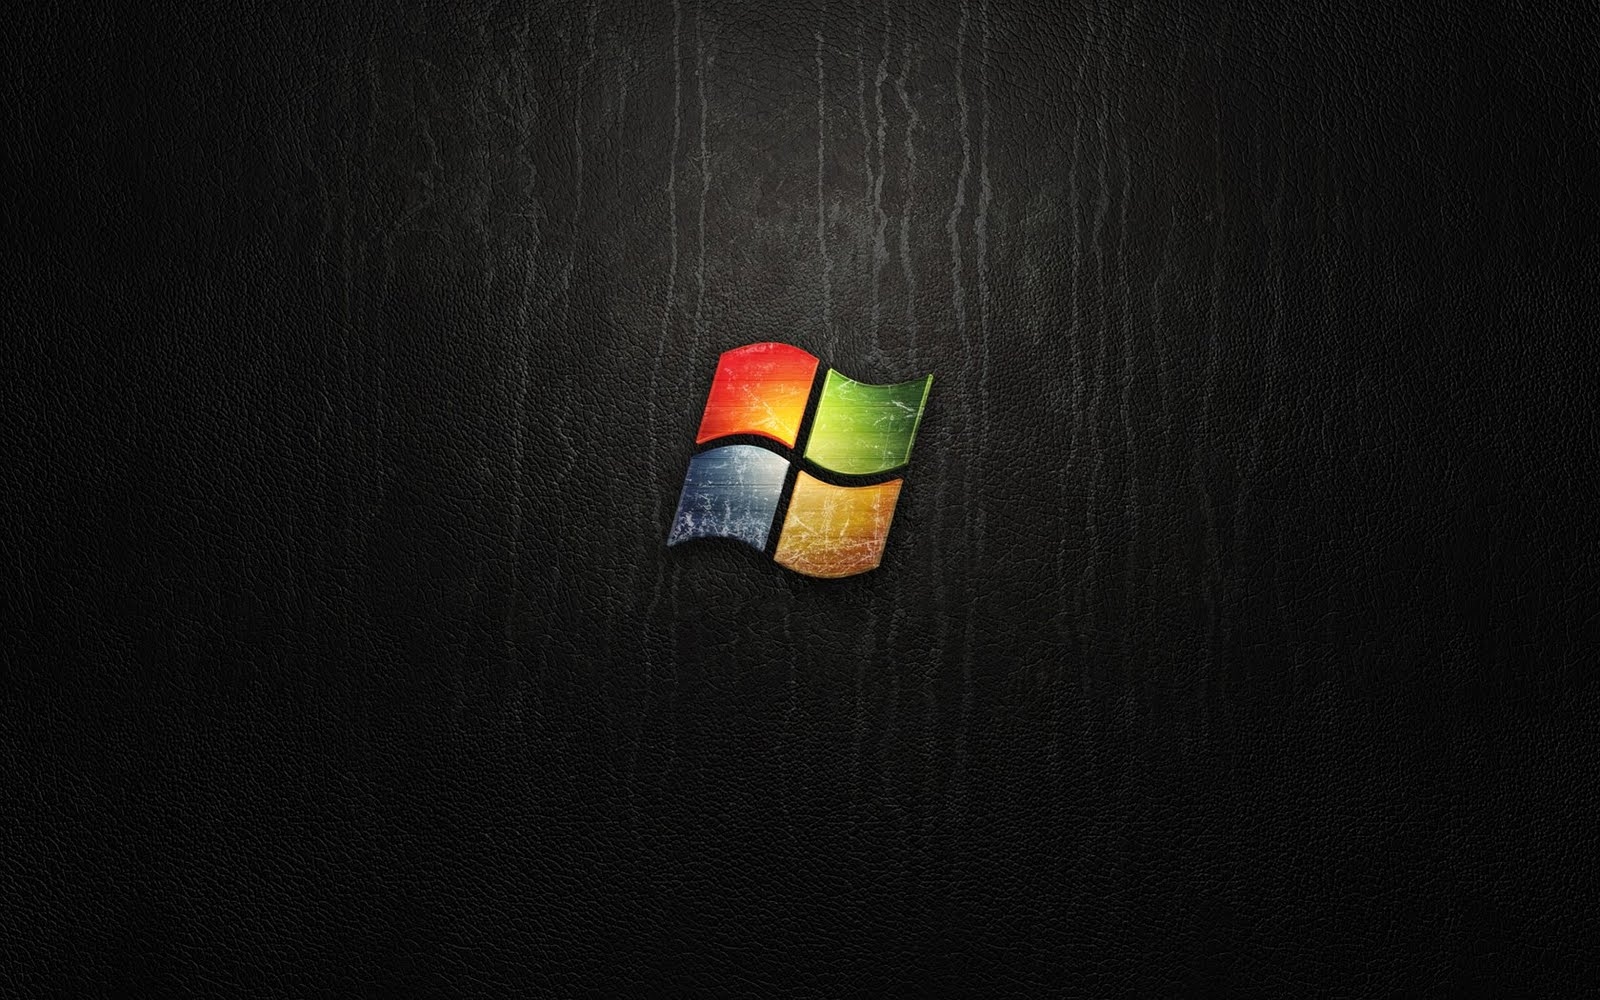 http://4.bp.blogspot.com/-jx6dgNZGjhY/Ty2KDx9mfGI/AAAAAAAADNI/3vS_lzuCGn0/s1600/wallpapers_windows_logo.jpg